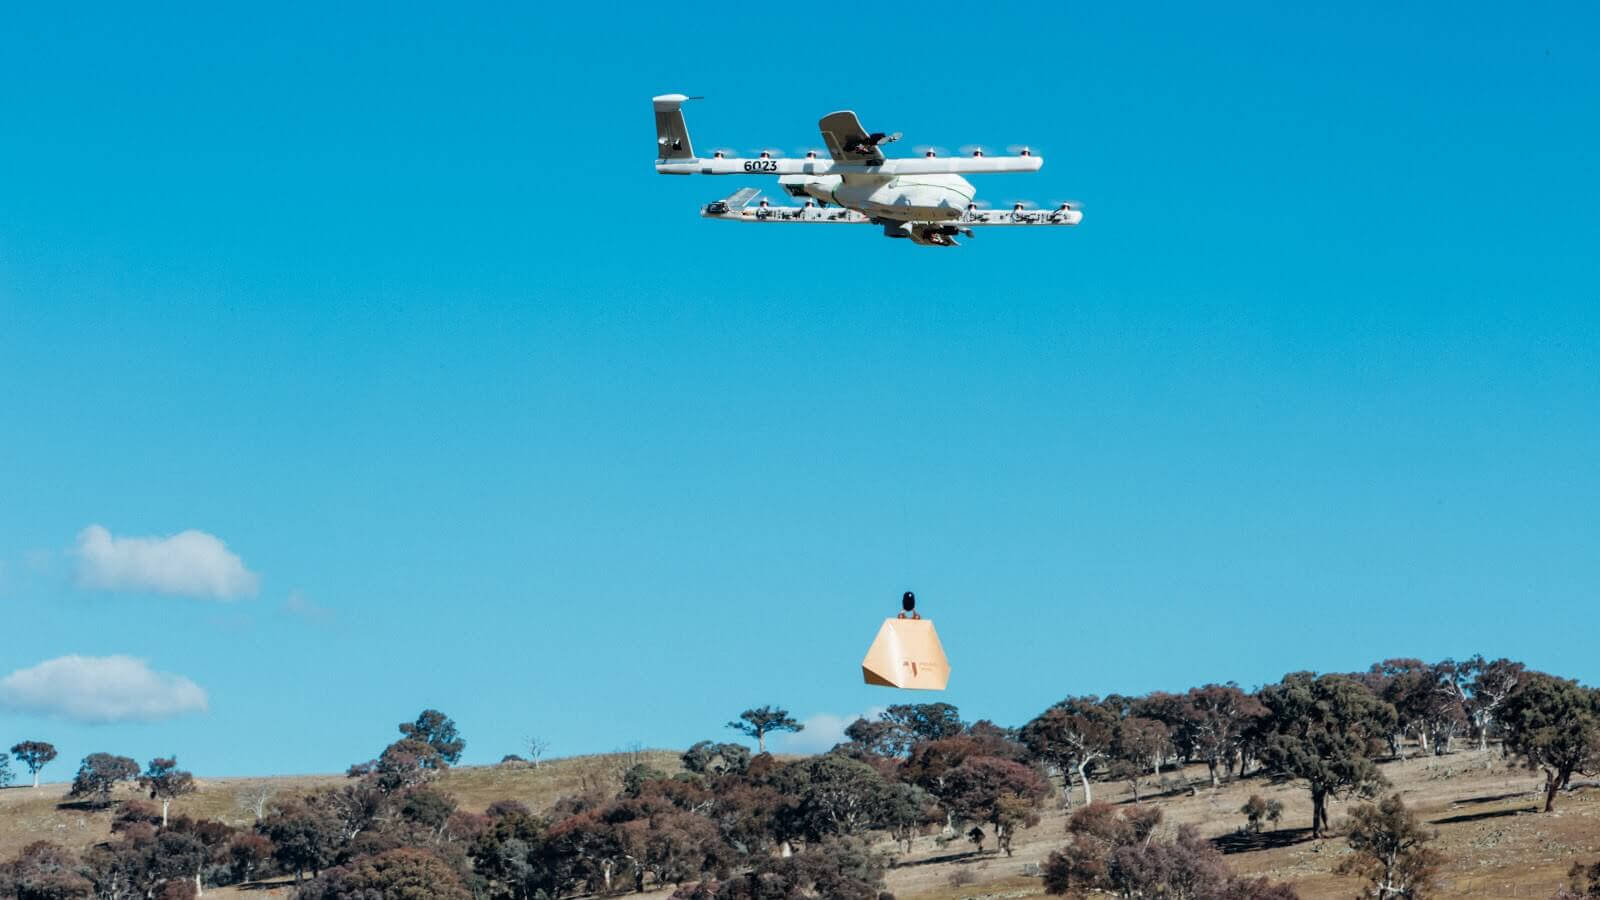 Drone Delivers Burritos and Medical Supplies in Rural Southeast Australia | All3DP